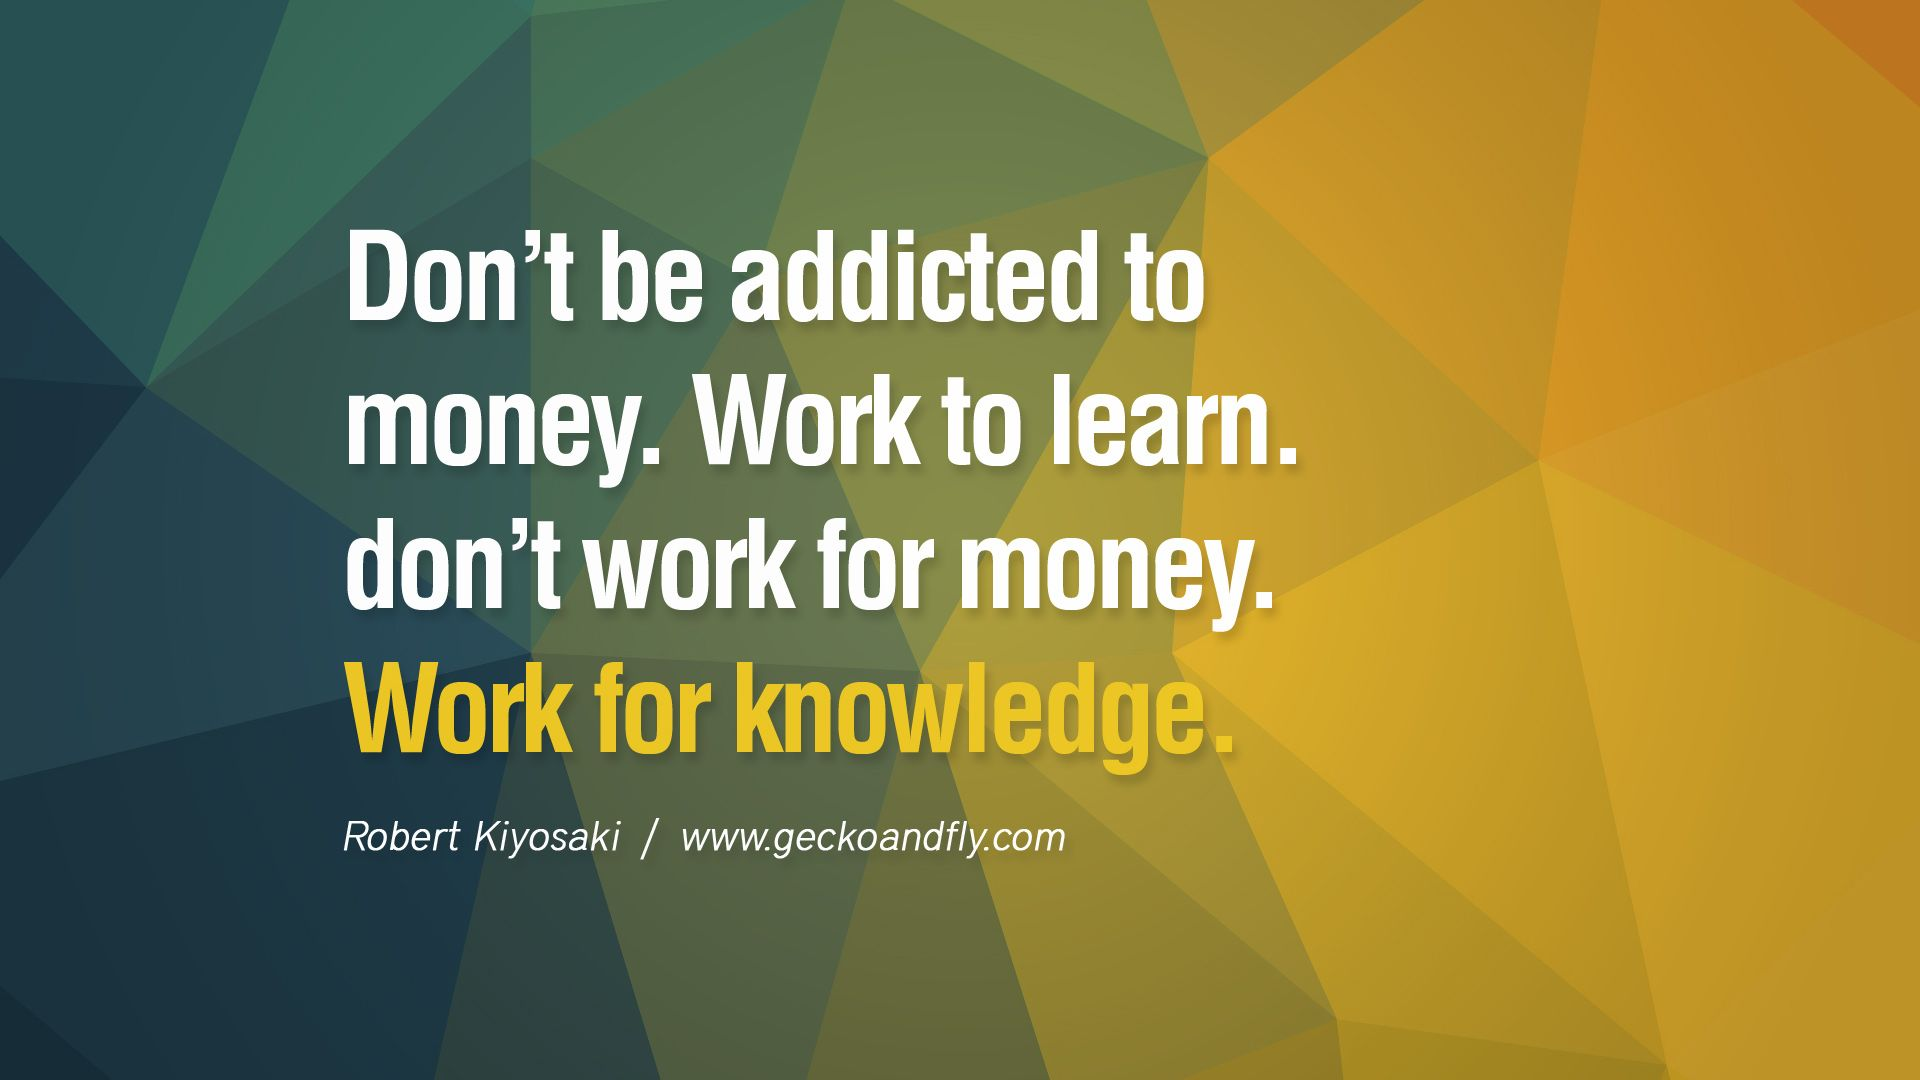 Rich Dad Poor Dad Quotes 20 Robert Kiyosaki Quotes From Rich Dad Book On Investing Network